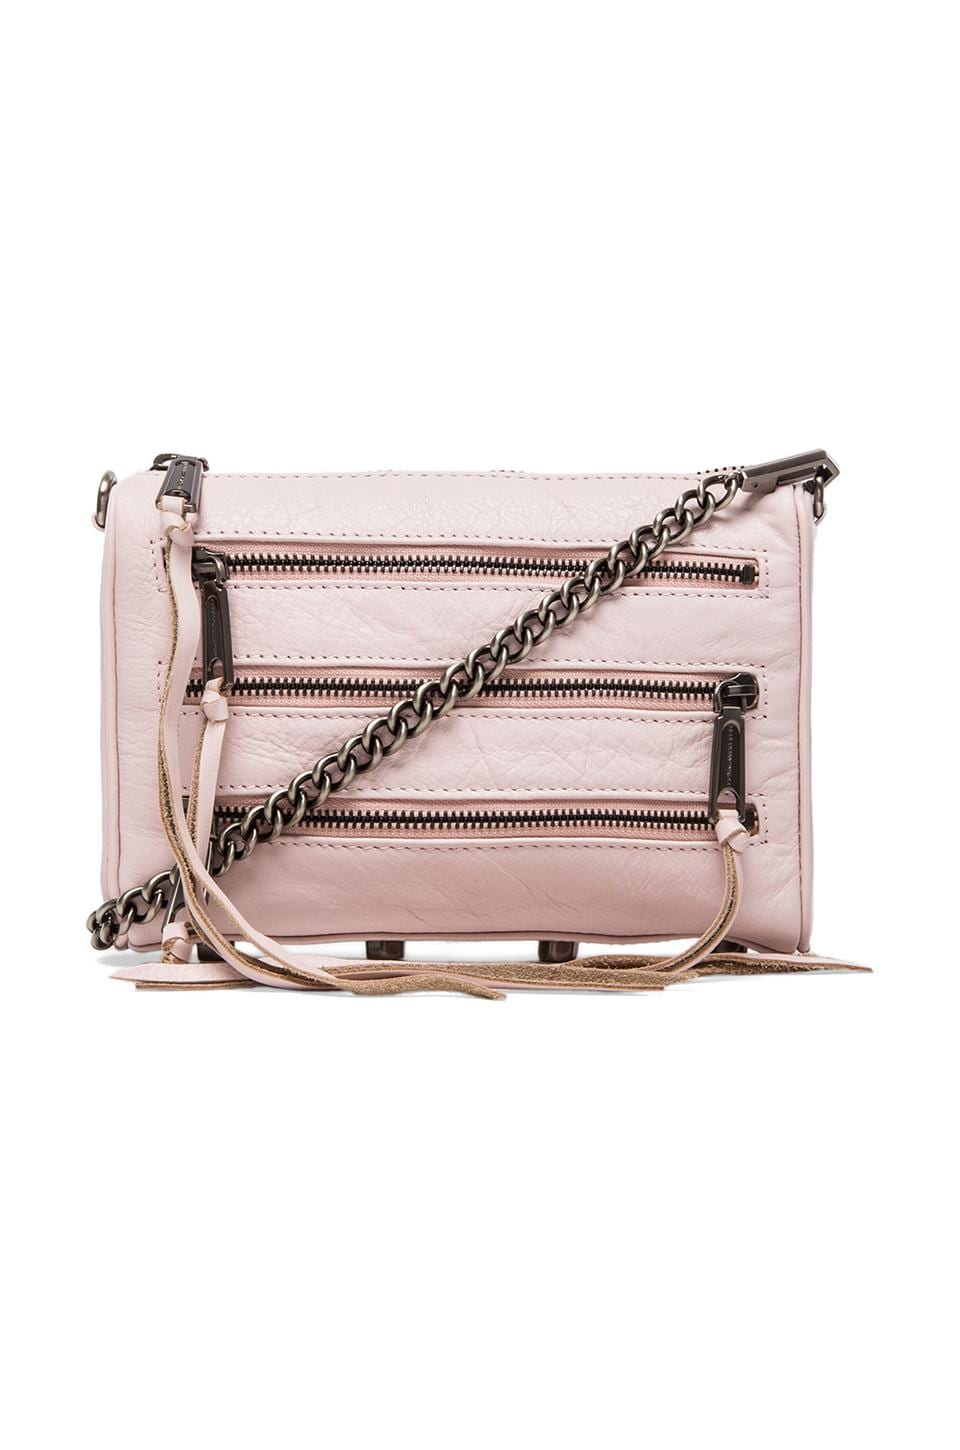 Rebecca Minkoff Mini 5 Zip in Pale Pink